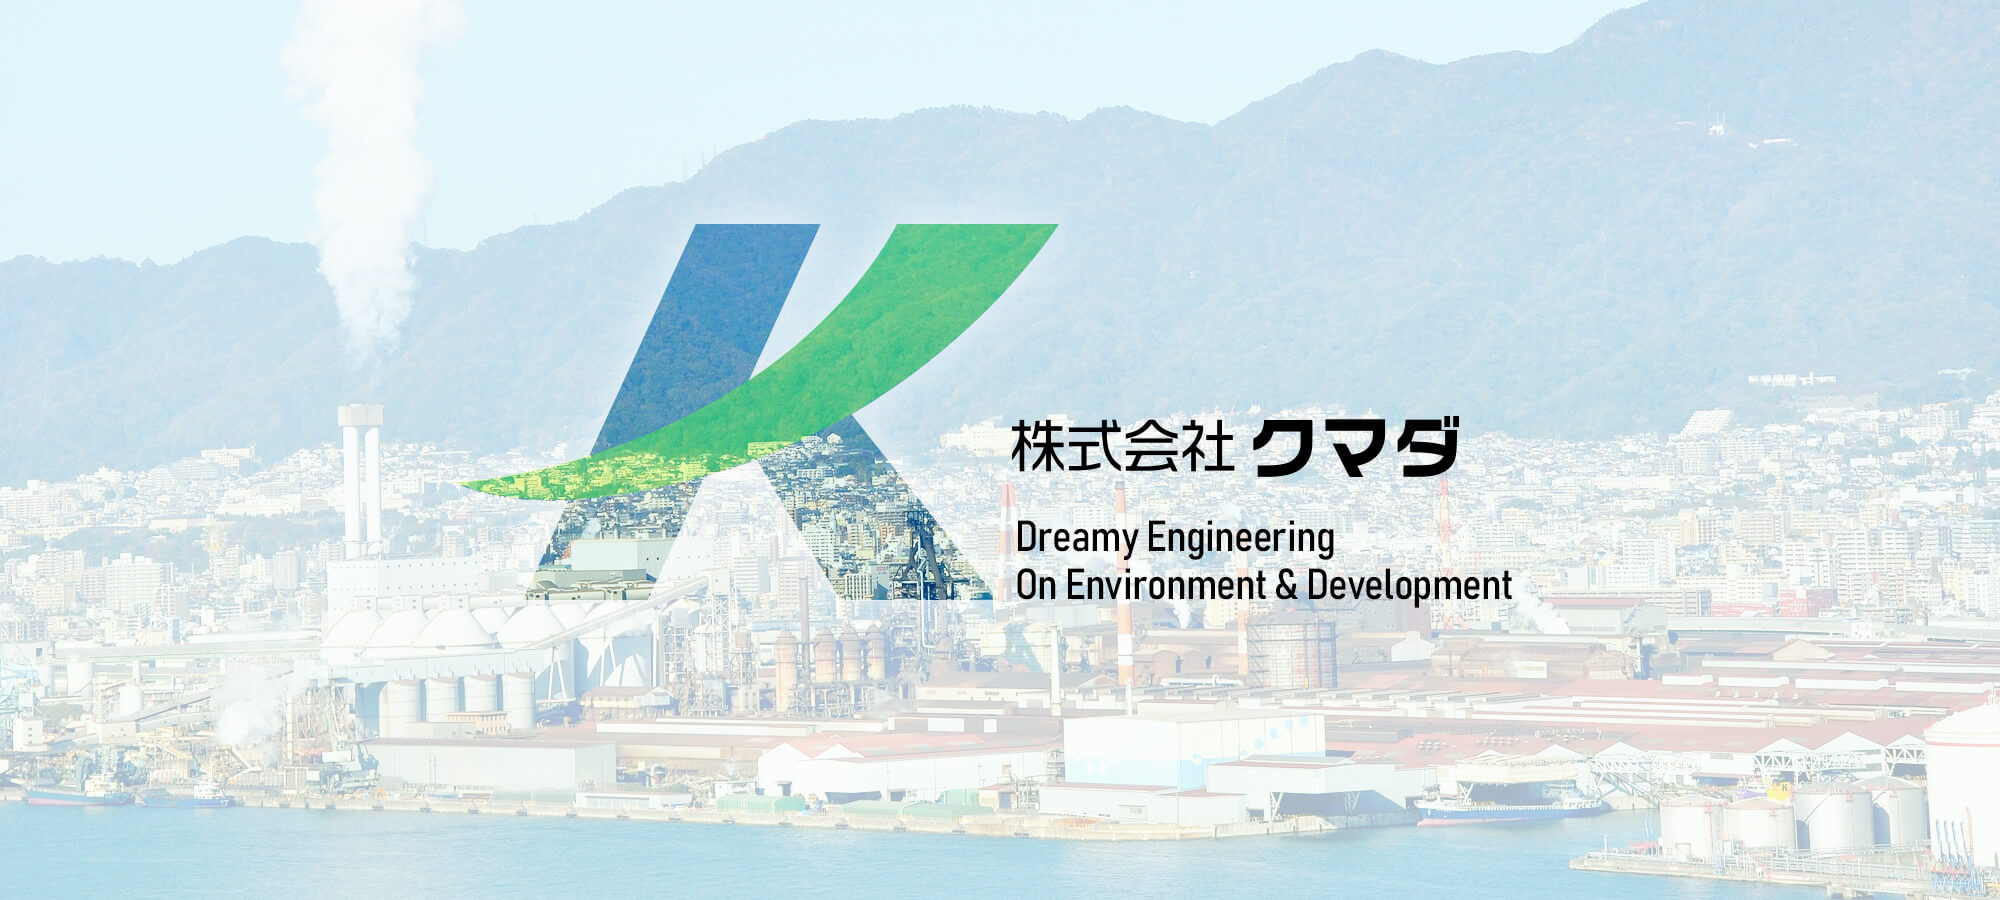 Dreamy Engineering On Environment & Development